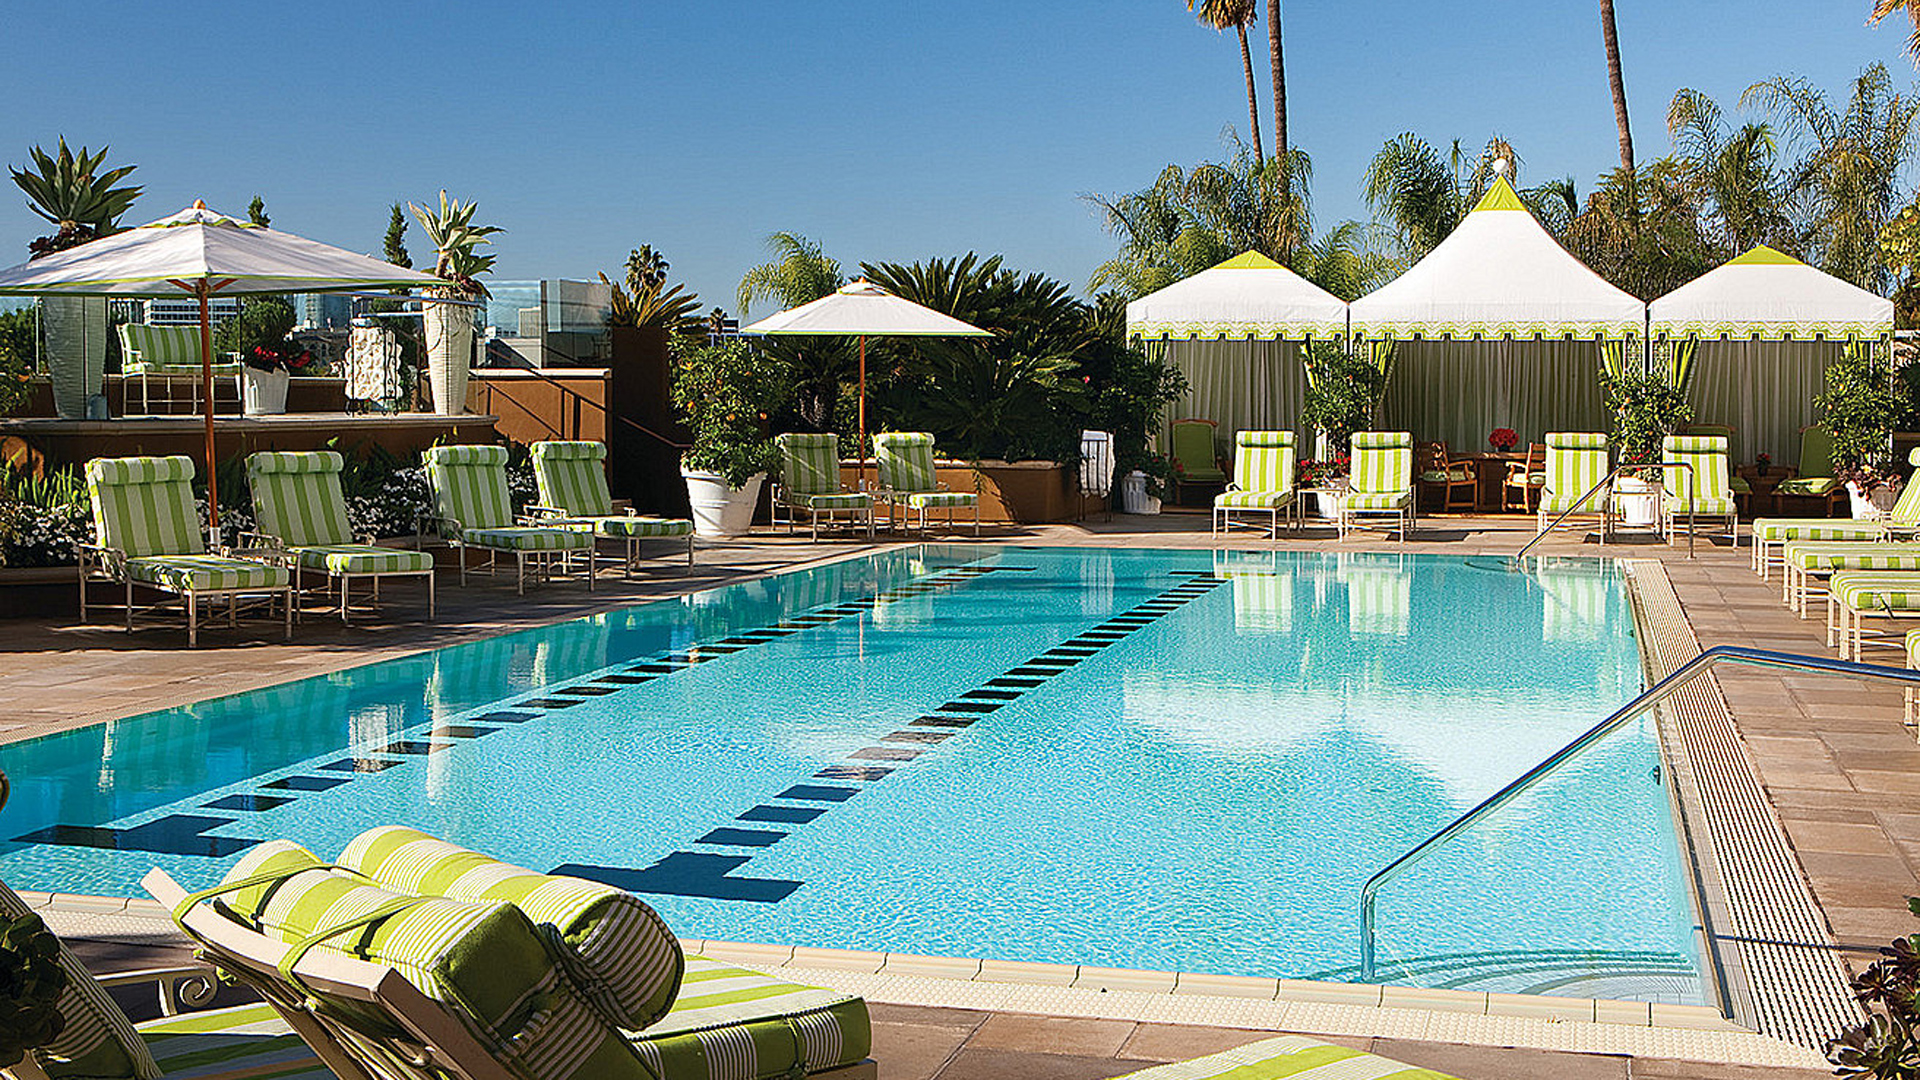 Book four seasons los angeles at beverly hills carrier - Best hotel swimming pools in california ...